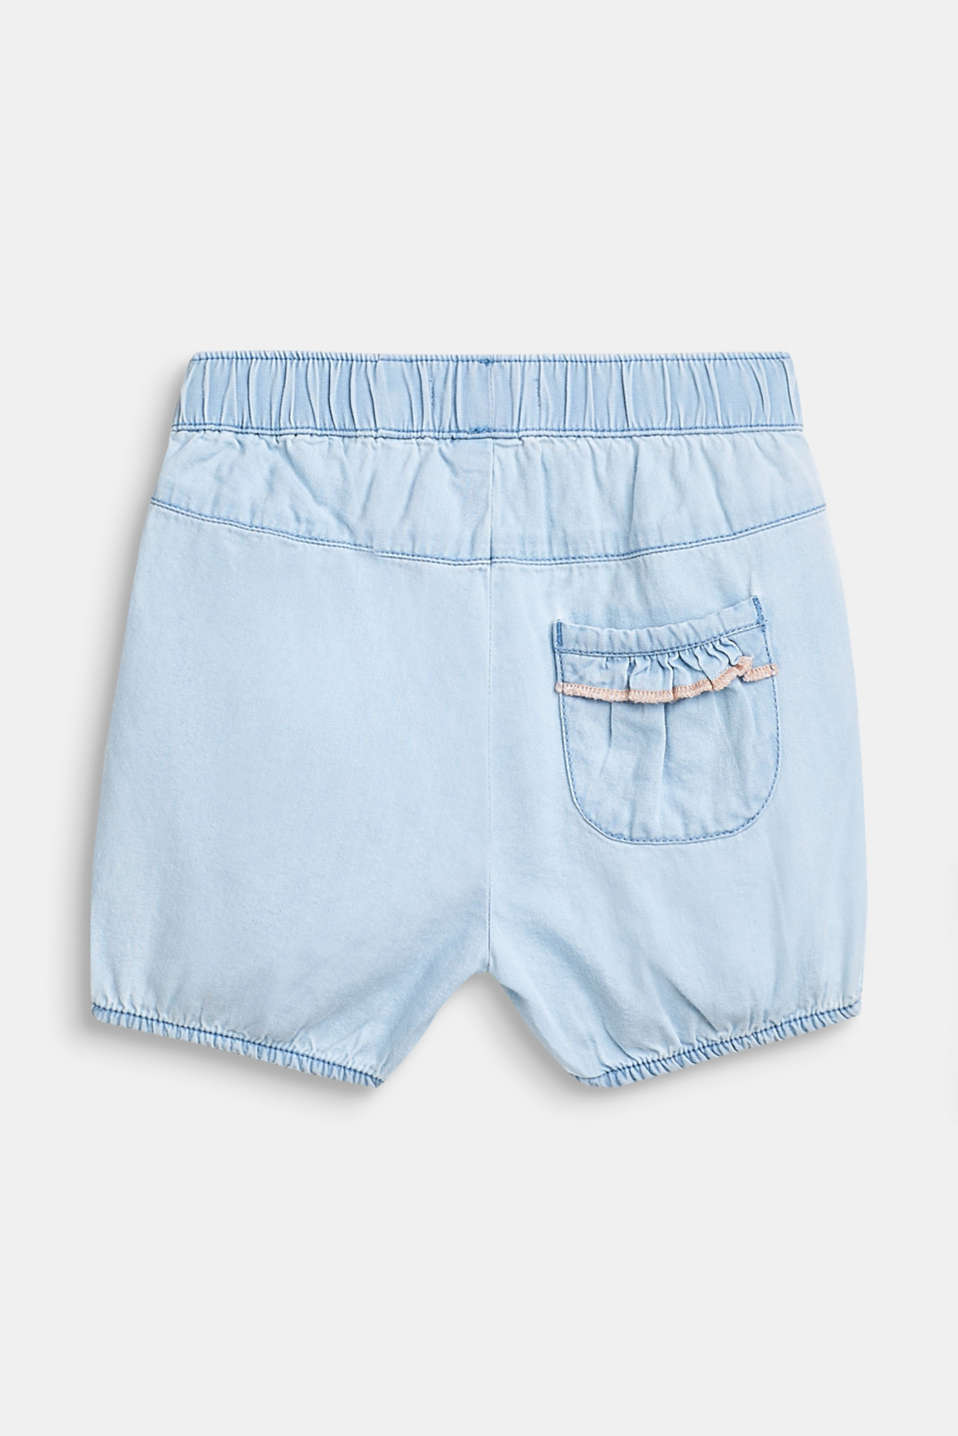 Denim shorts with a flounce detail, 100% cotton, LCBLUE LIGHT WAS, detail image number 1